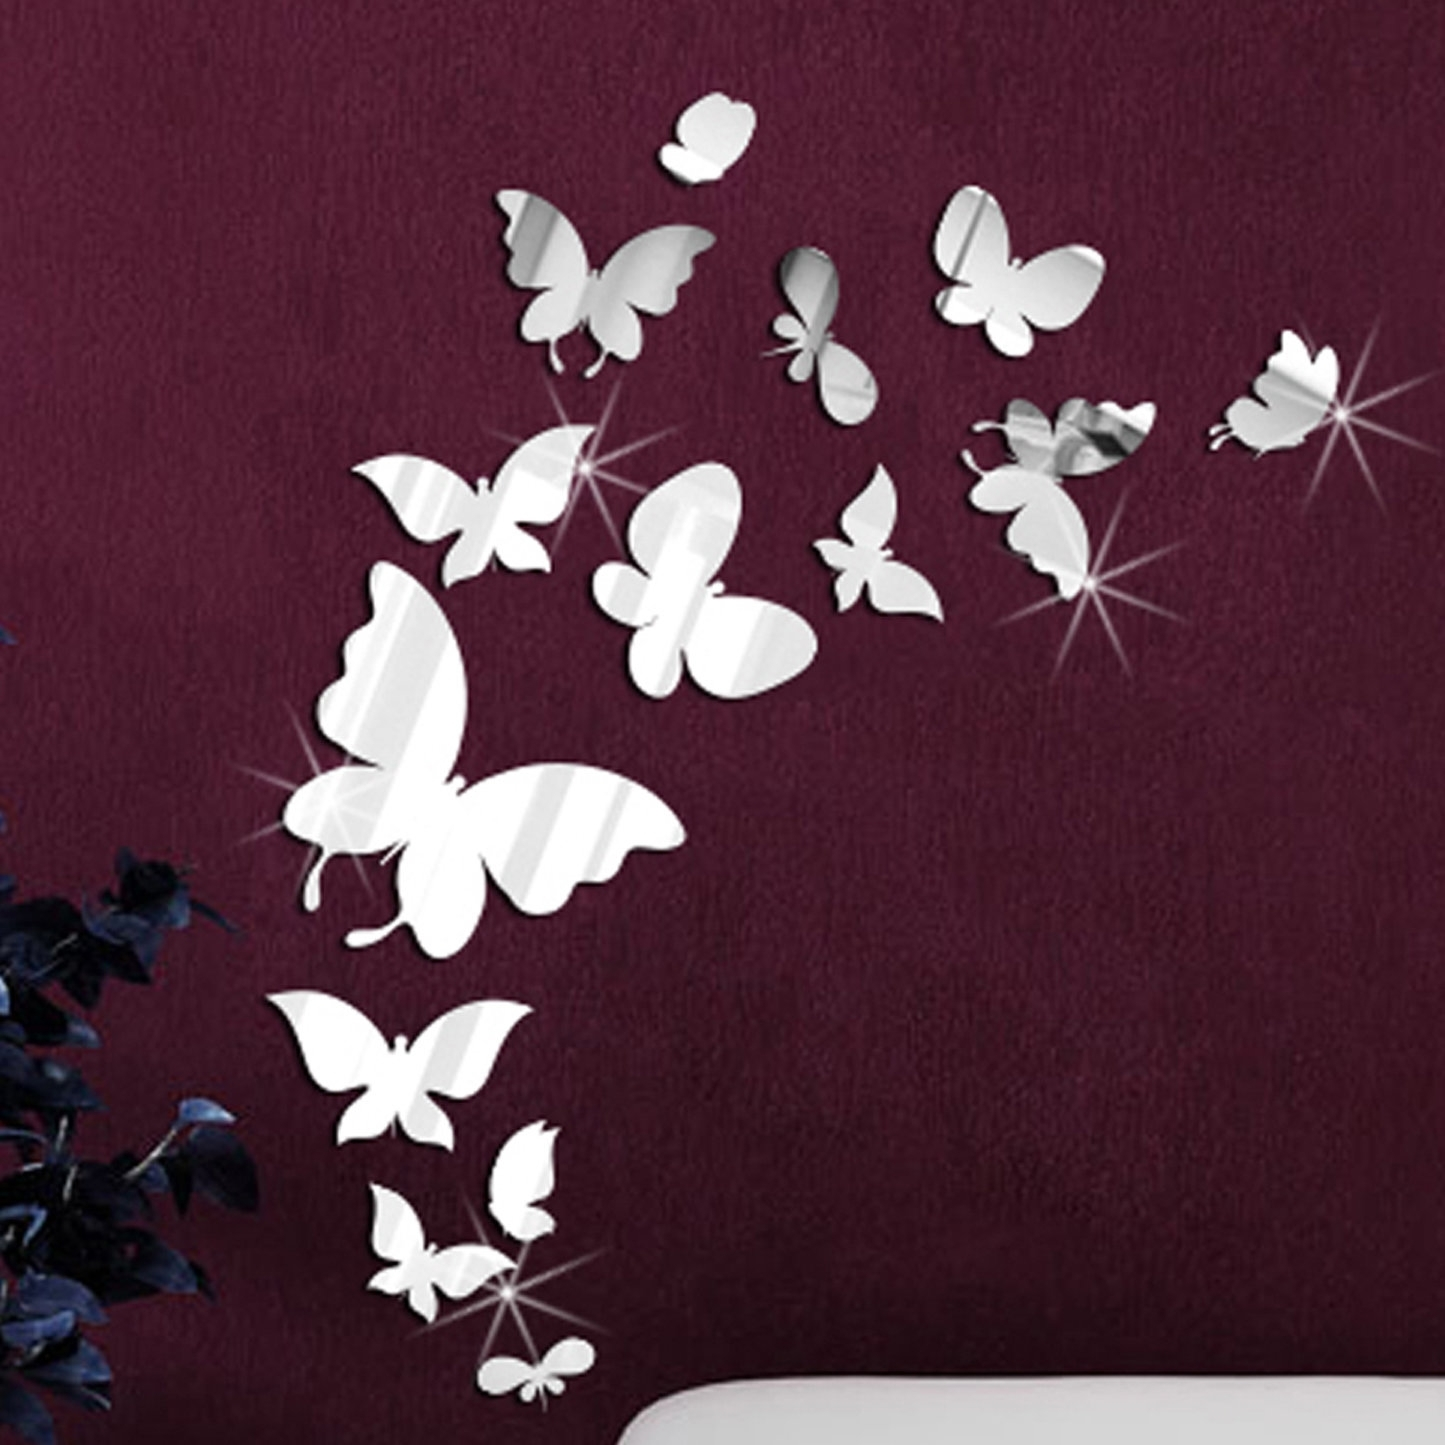 Walplus 14 Mirror Butterflies Wall Art Wall Decal & Reviews | Wayfair With Latest Butterfly Wall Art (Gallery 3 of 15)